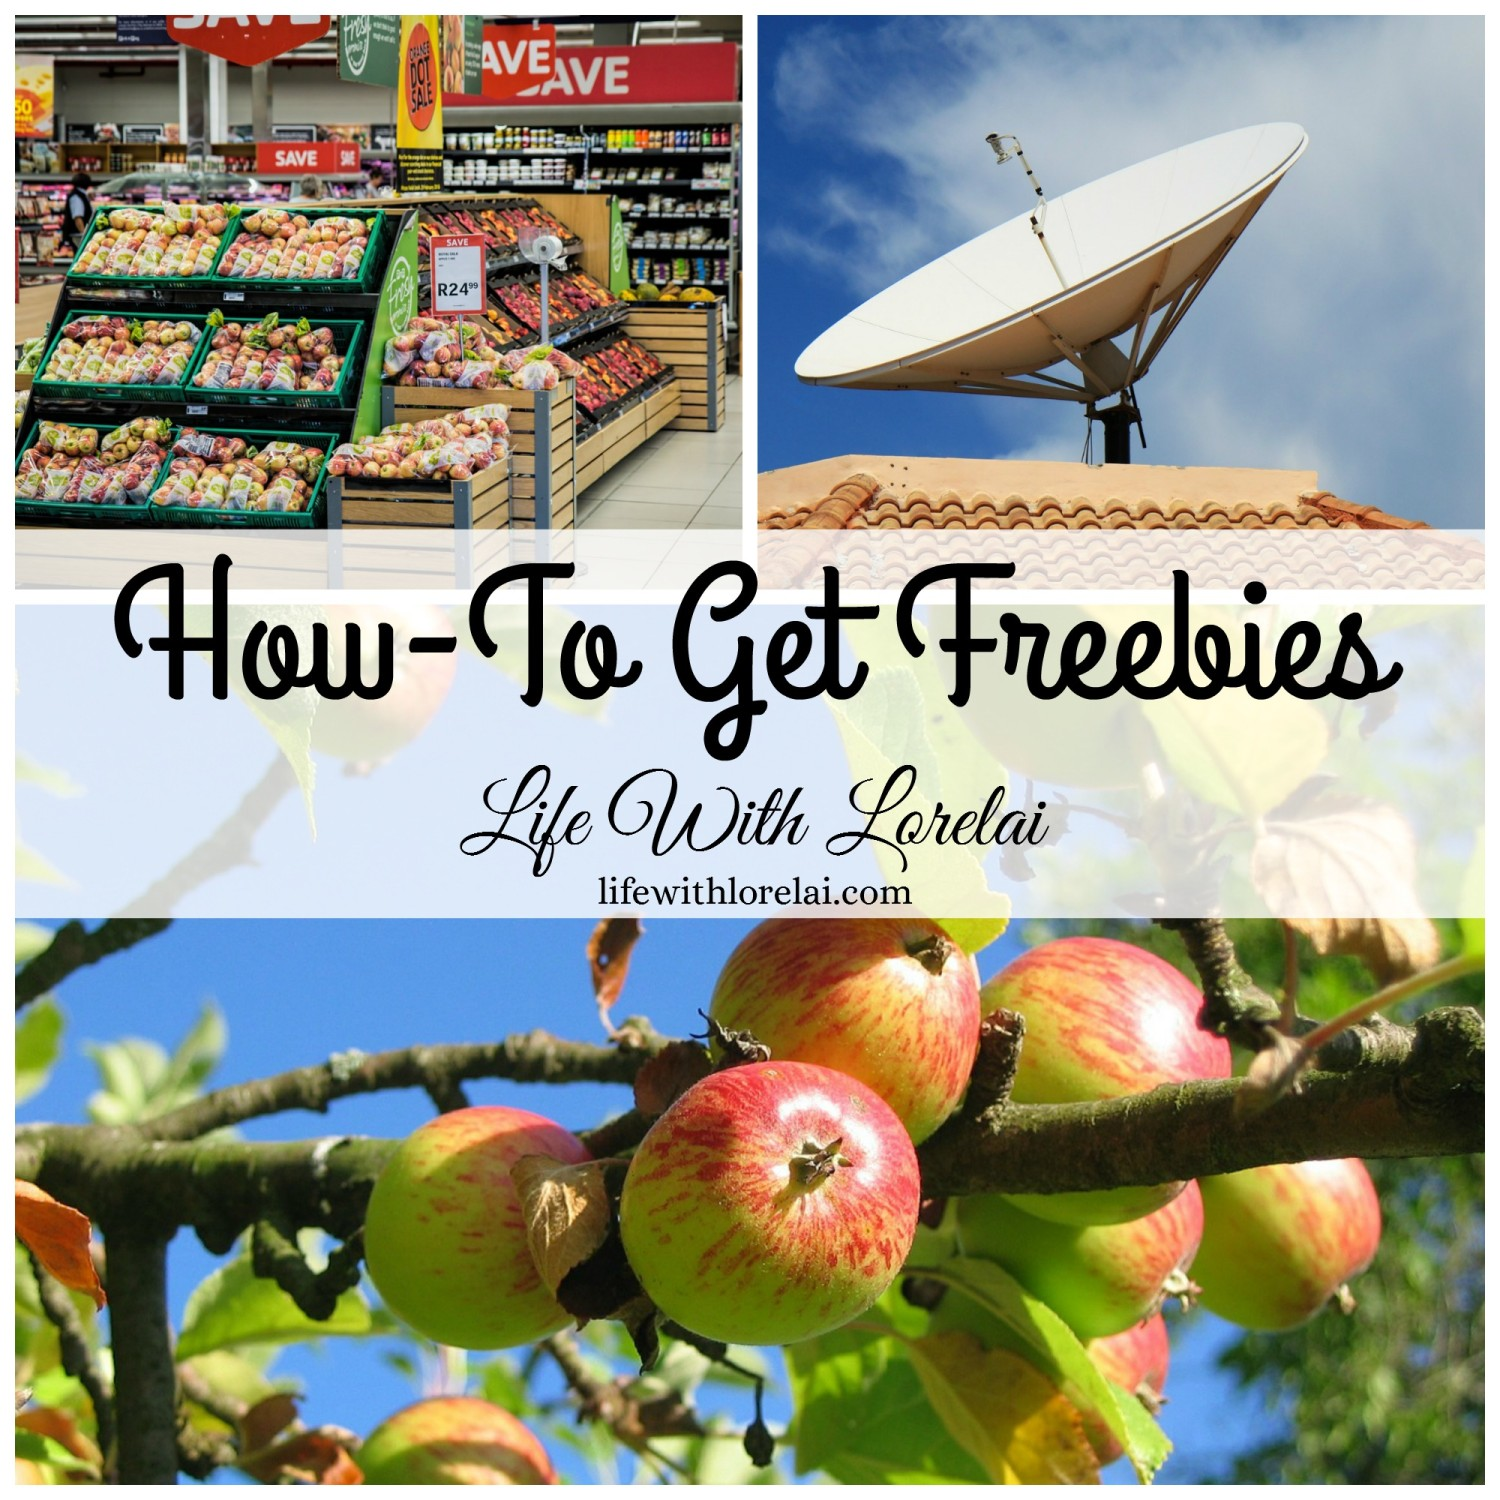 How-To Get Freebies - Life With Lorelai - Discountrue.com